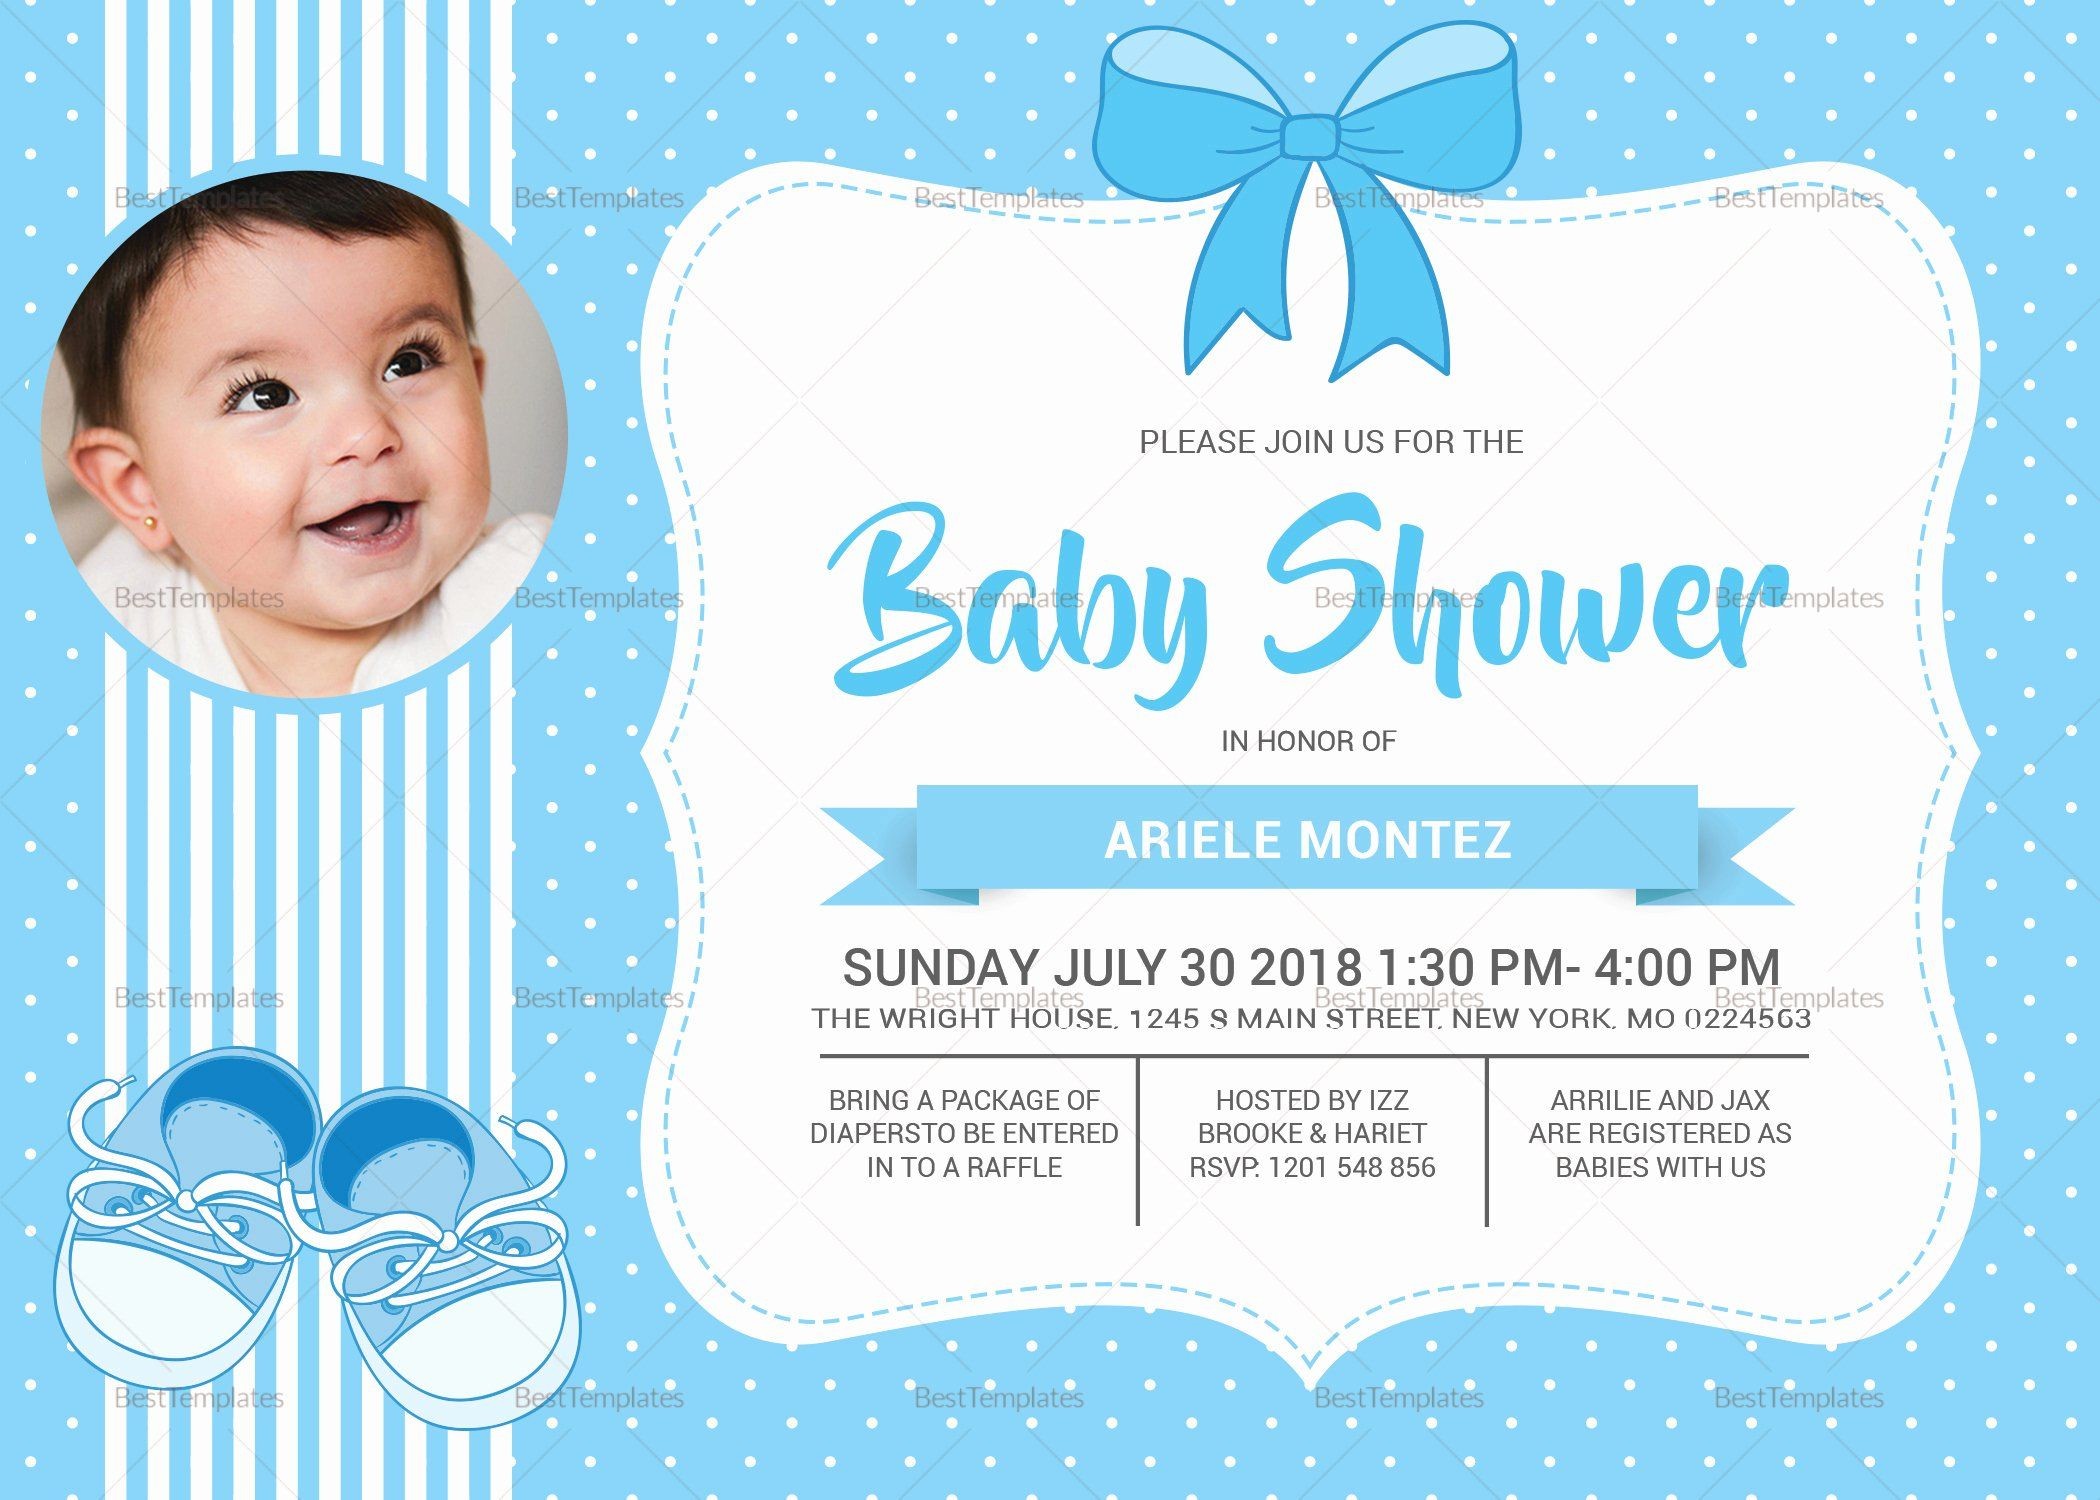 Baby Shower Card Template Inspirational Baby Shower Blue Invitation Card De In 2020 Baby Shower Invitation Cards Baby Shower Invitations Design Baby Shower Invitations